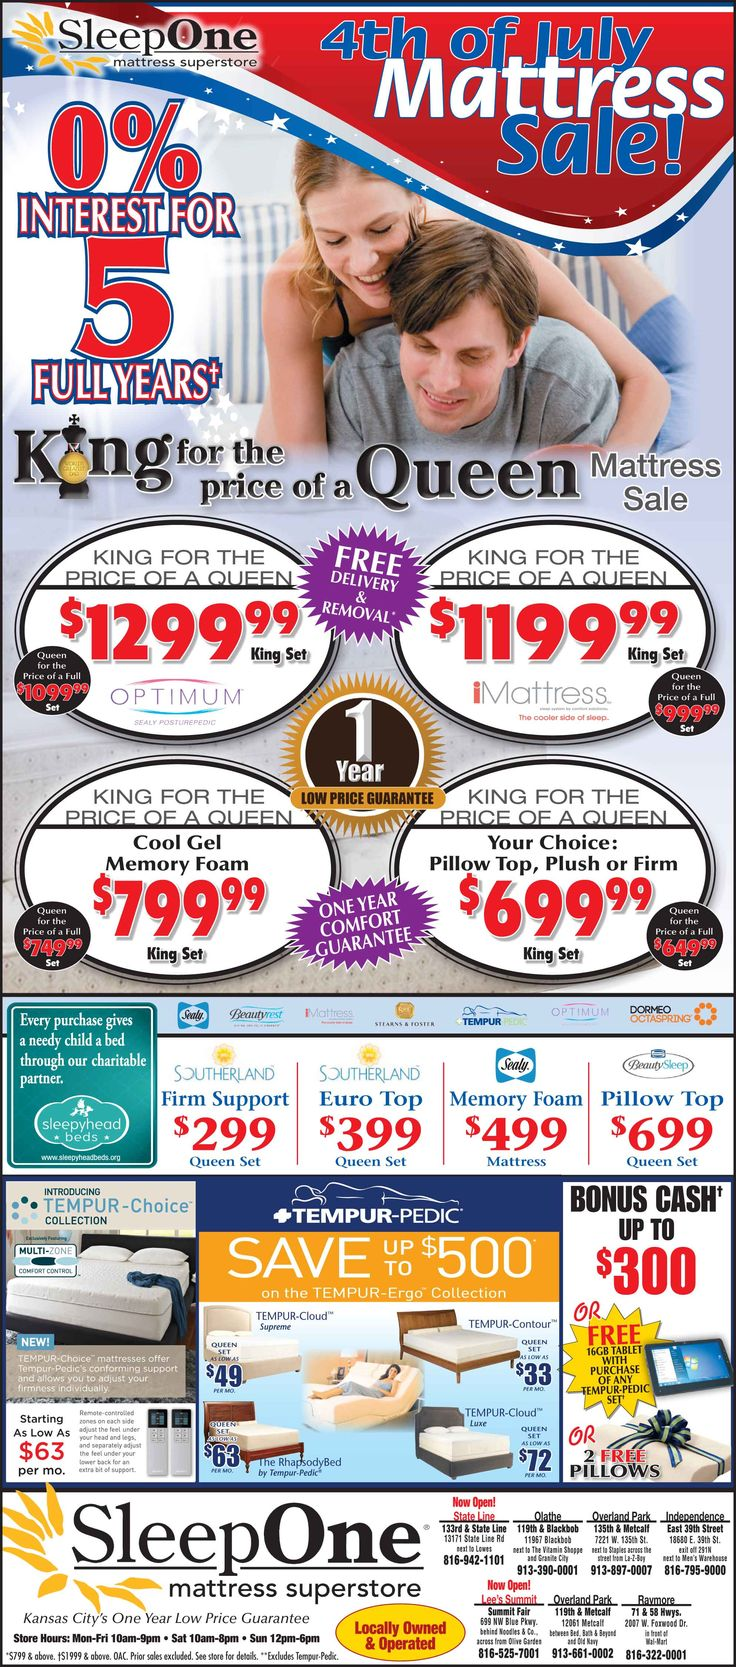 Sleepone Mattress Super Has Lowest Price In Kansas City Guaranteed Best Offers